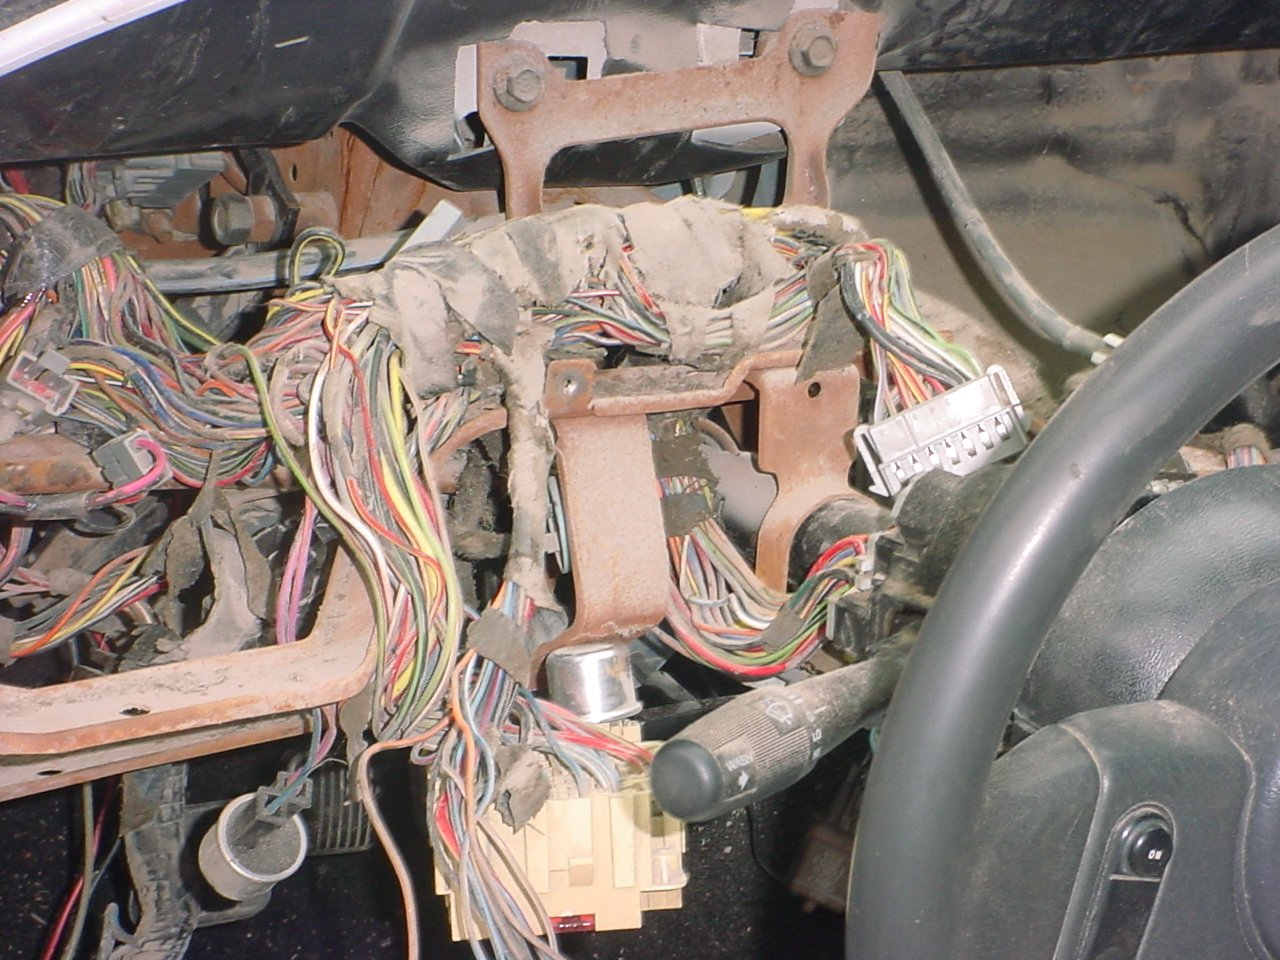 12808d1134269196 underdash wiring diagram dsc01663 underdash wiring diagram ford mustang forum 1989 mustang wiring harness at soozxer.org